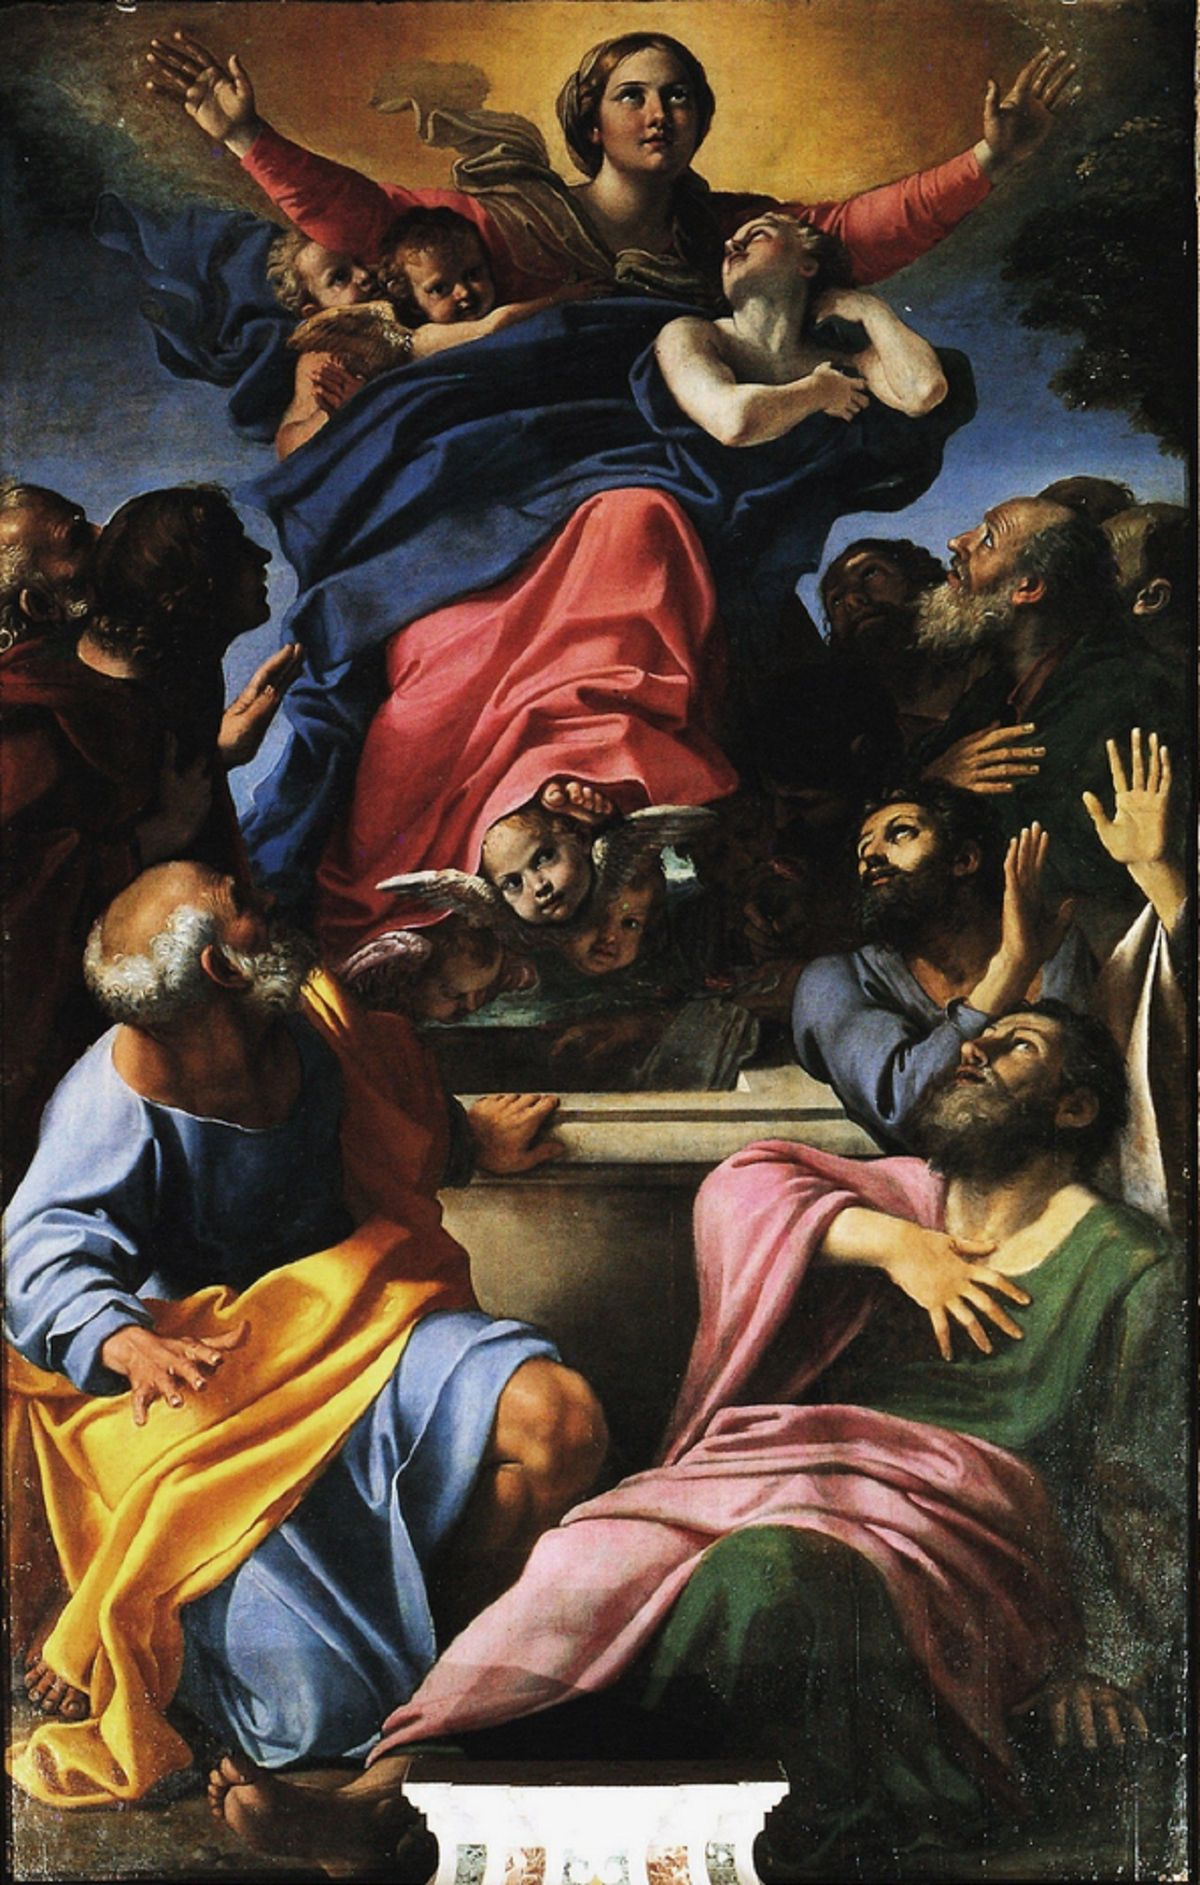 Carracci-Assumption_of_the_Virgin_Mary